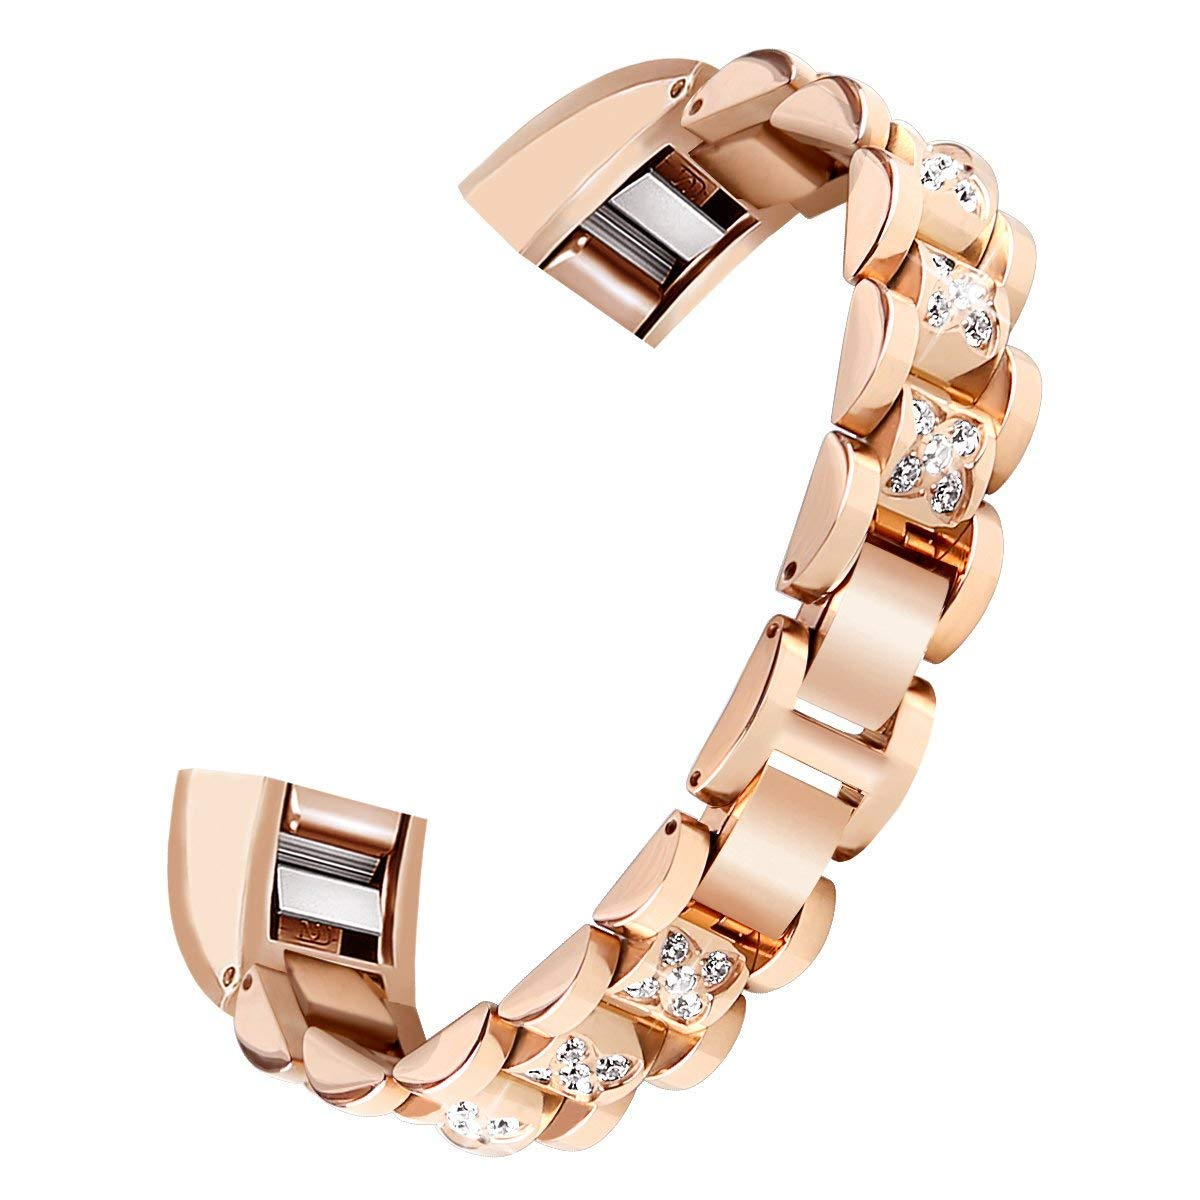 DBoer Metal Band Compatible with Fitbit Alta Watch Band Premium Stainless Steel Band for Fitbit Alta HR Matte Rose Gold Band Bling Diamond Wristband Replacement Strap for Women Bracelet Stylish Bangle